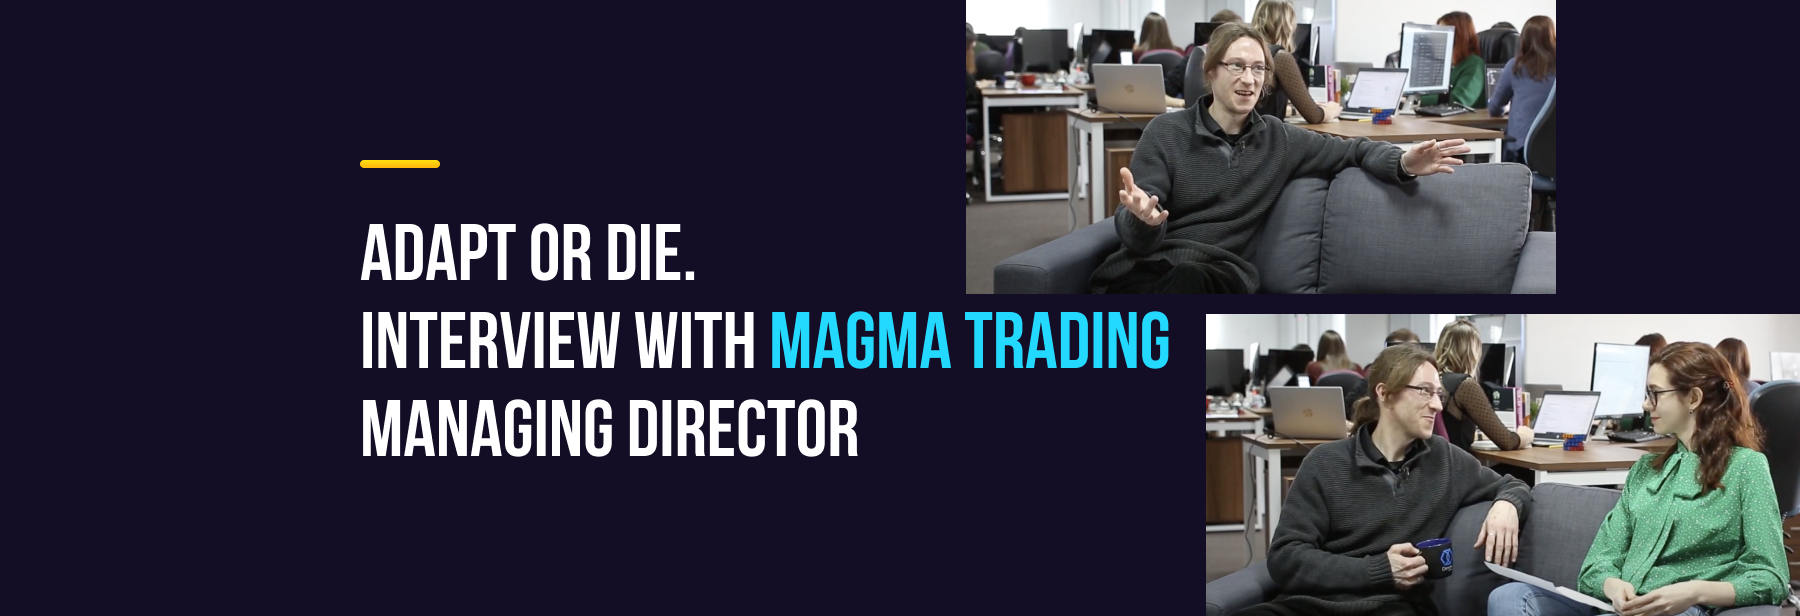 interview with Magma Trading Managing Director